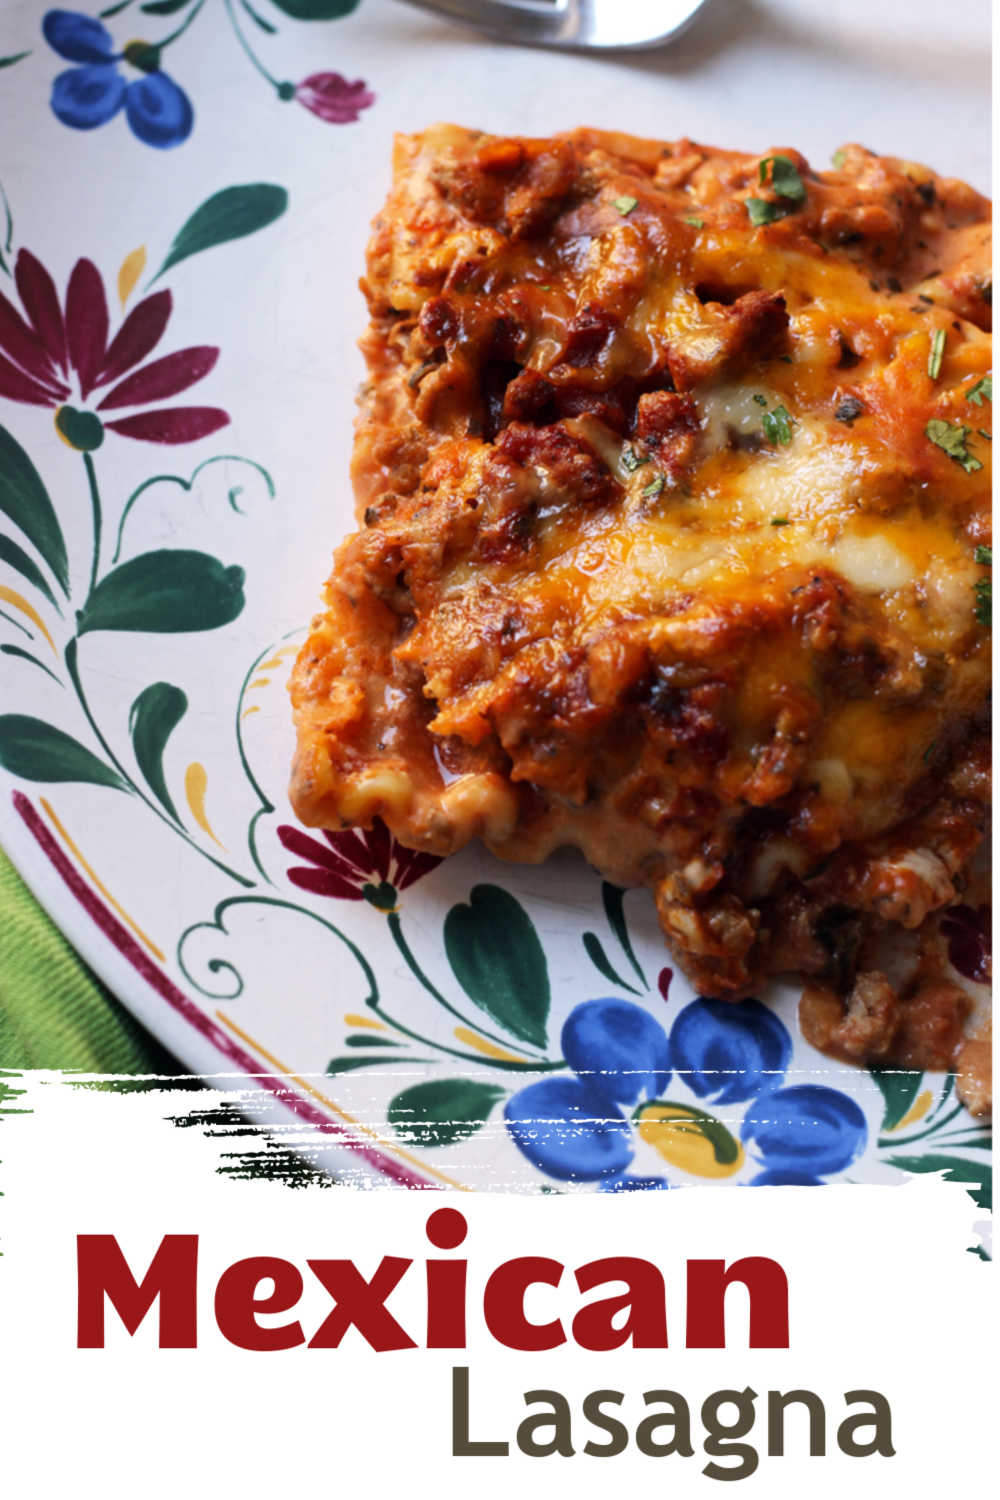 A close up of lasagna on plate